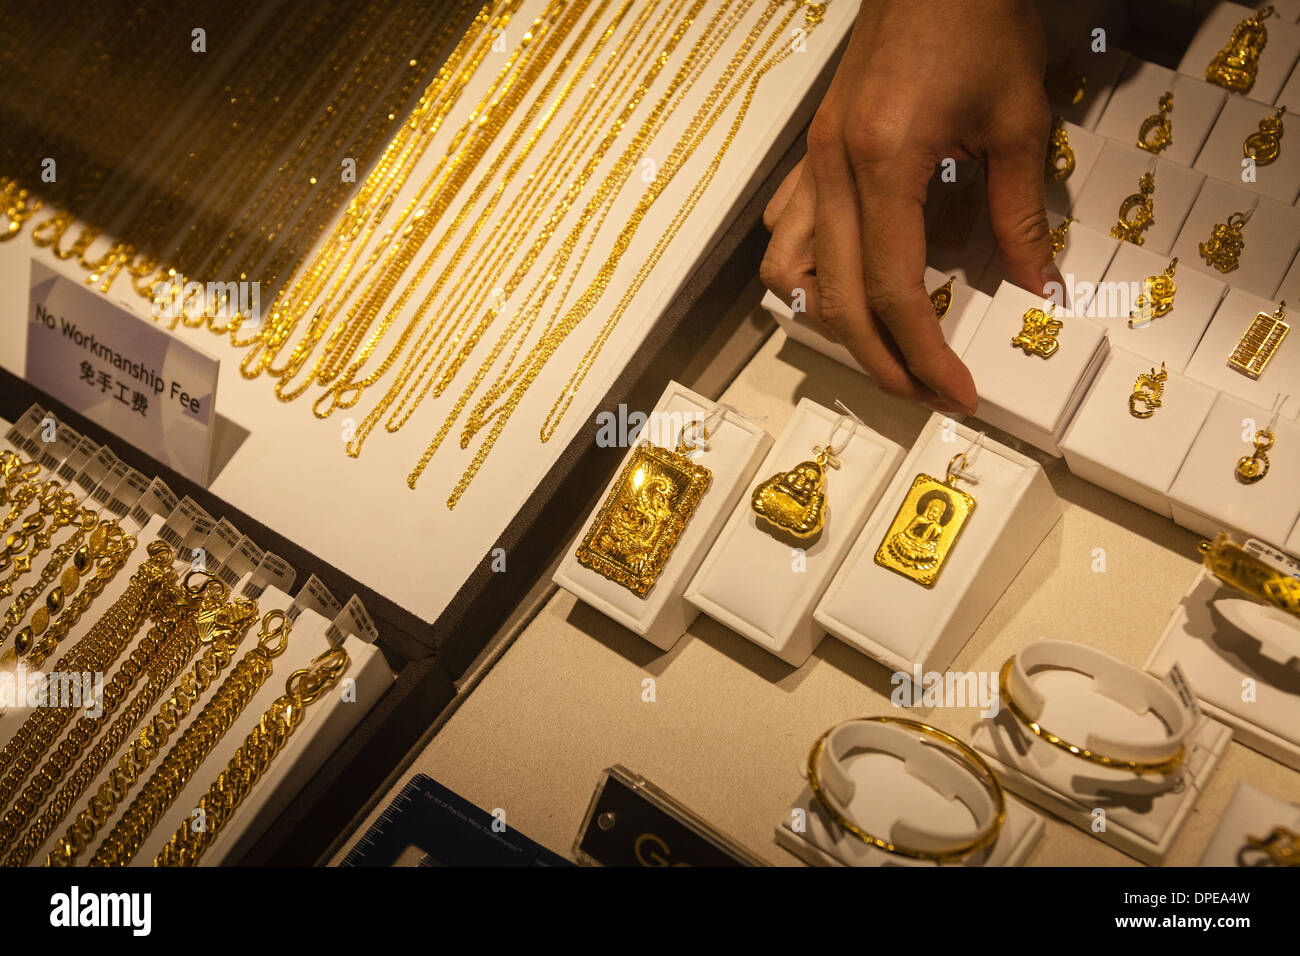 Gold jewellery on sale at a branch of Maxi-Cash pawn brokerage in Singapore - Stock Image